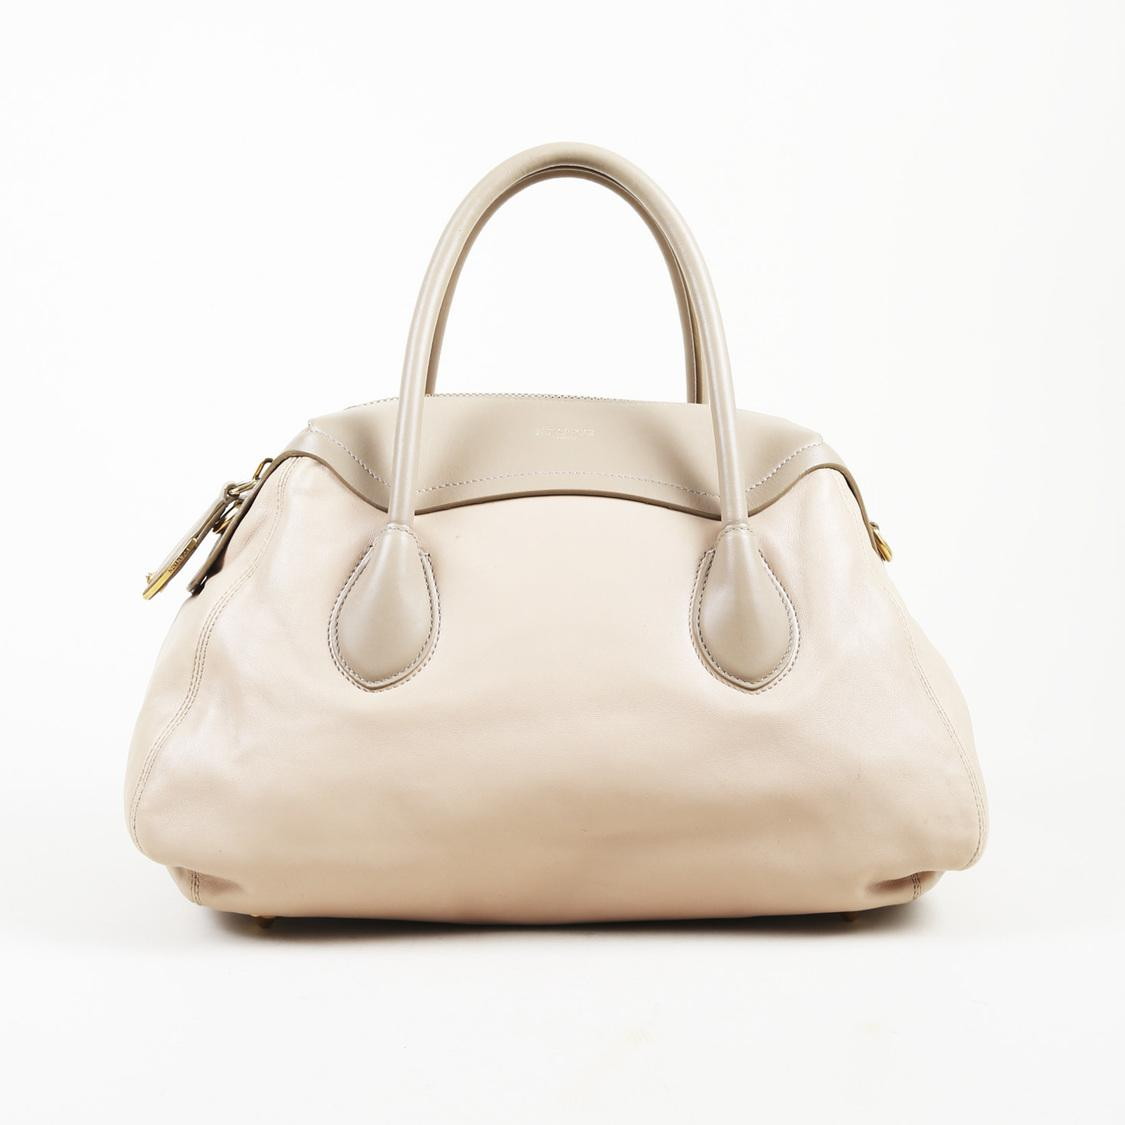 62726a892e Lyst - Nina Ricci Leather Tote Bag in Pink